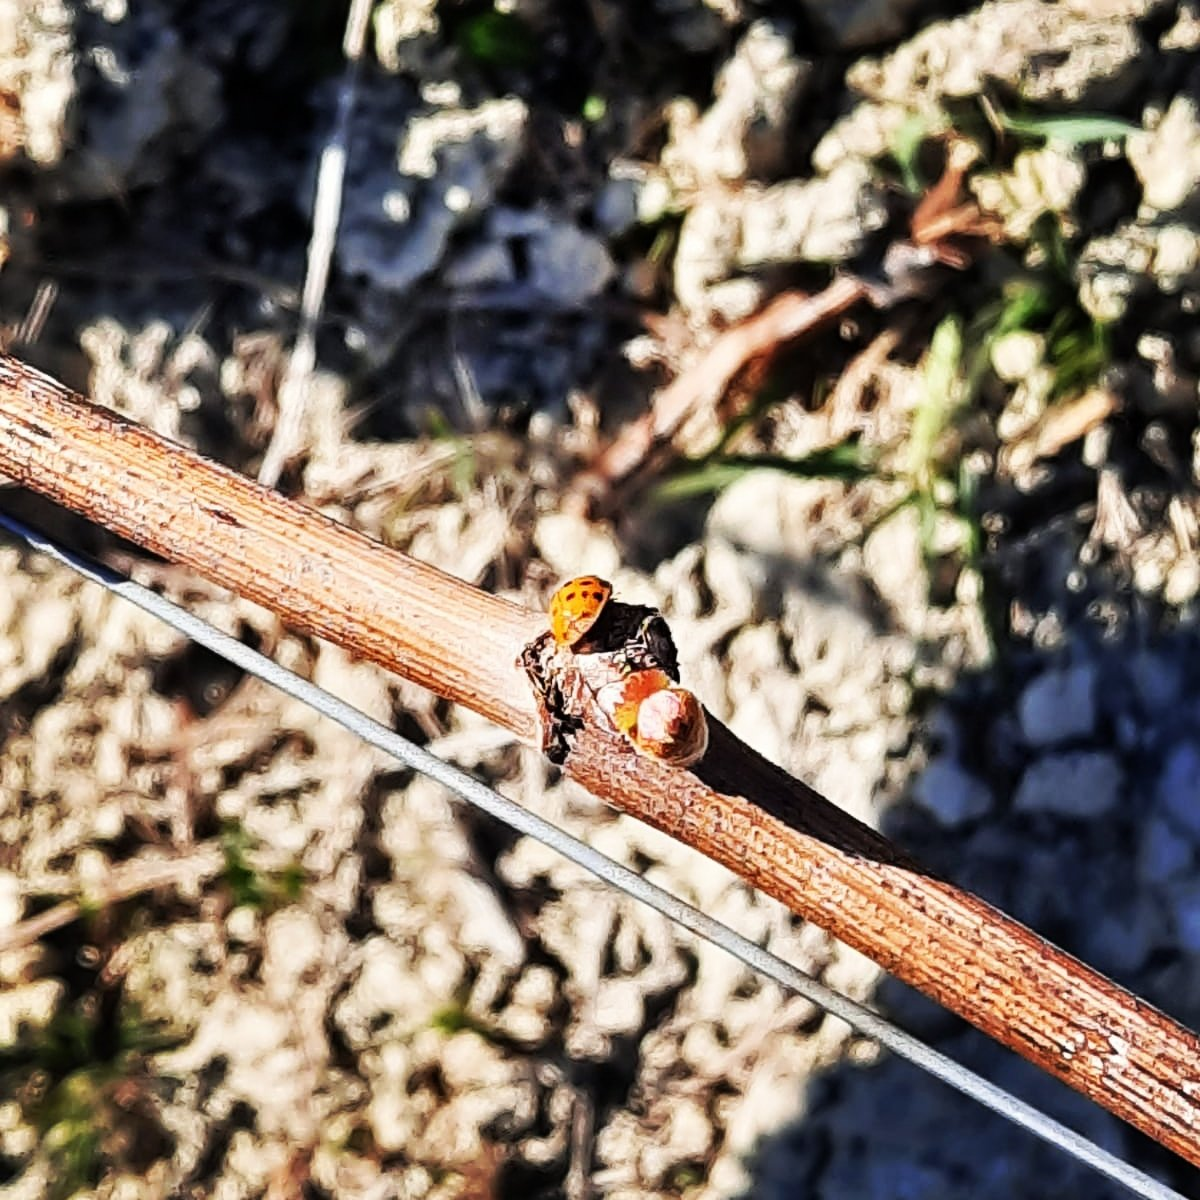 S P R I N G  T I M E   In #springtime, #life explodes in the #vineyards  .  #cascinachicco #roero #langhe #natura #nature #coccinella #ladybug #piedmont #greenexperience #happiness #felicità pic.twitter.com/0iYbhHSnuJ